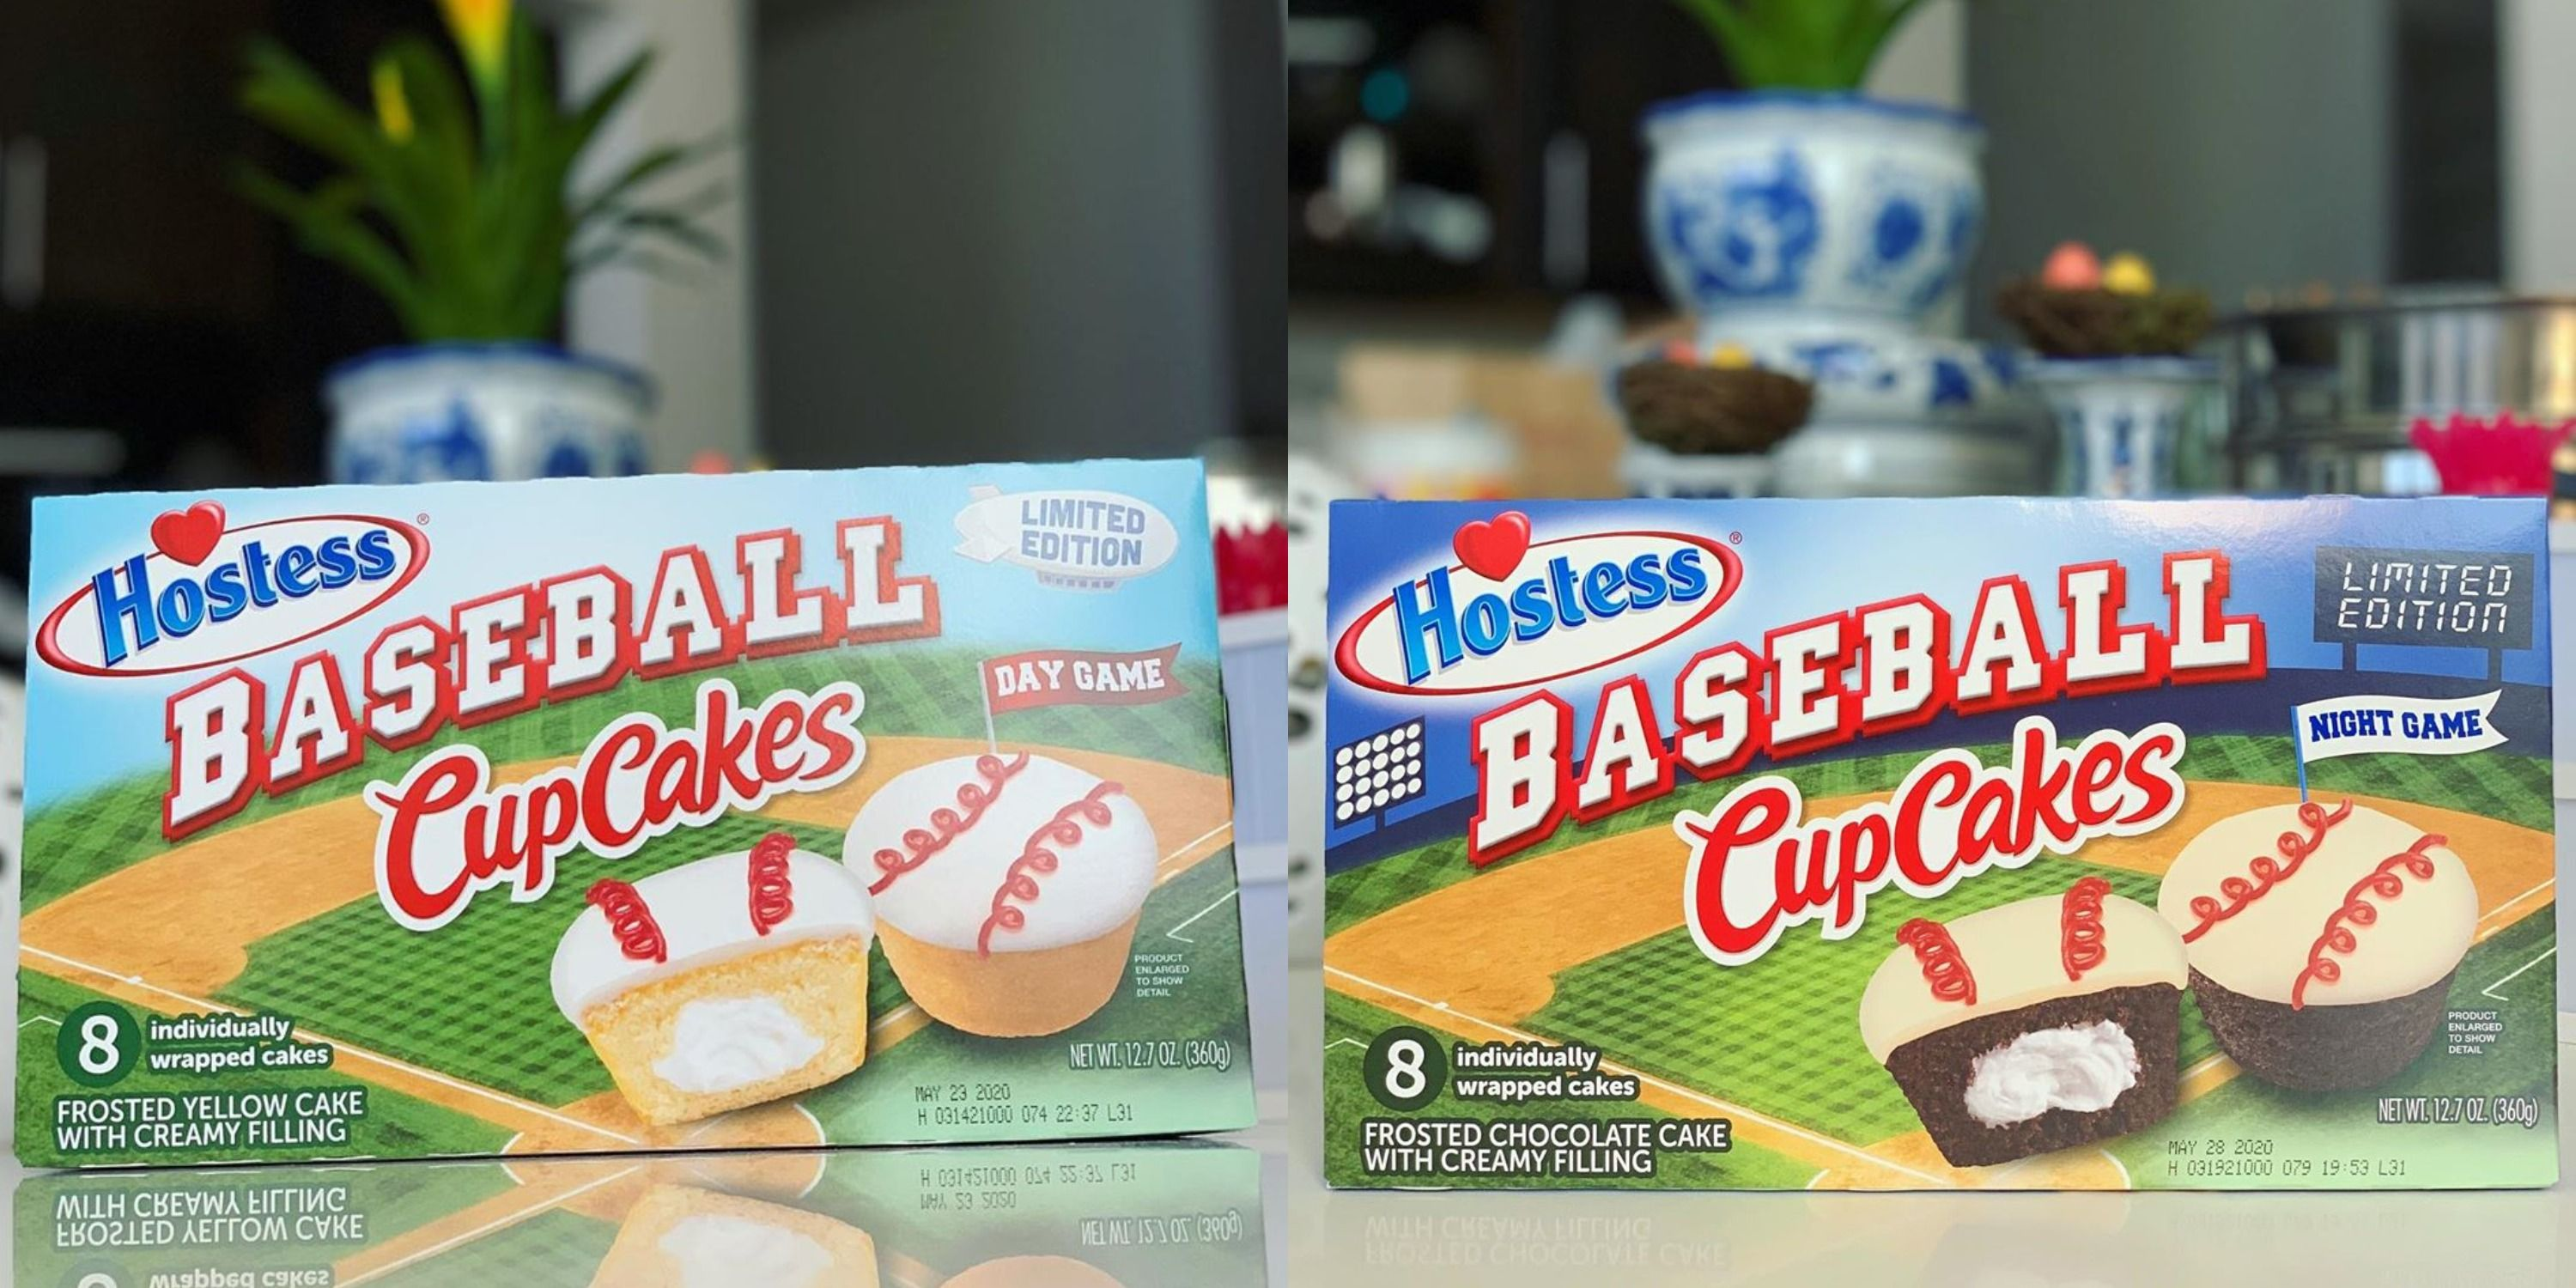 Hostess Has Baseball Cupcakes In 'Day Game' And 'Night Game'